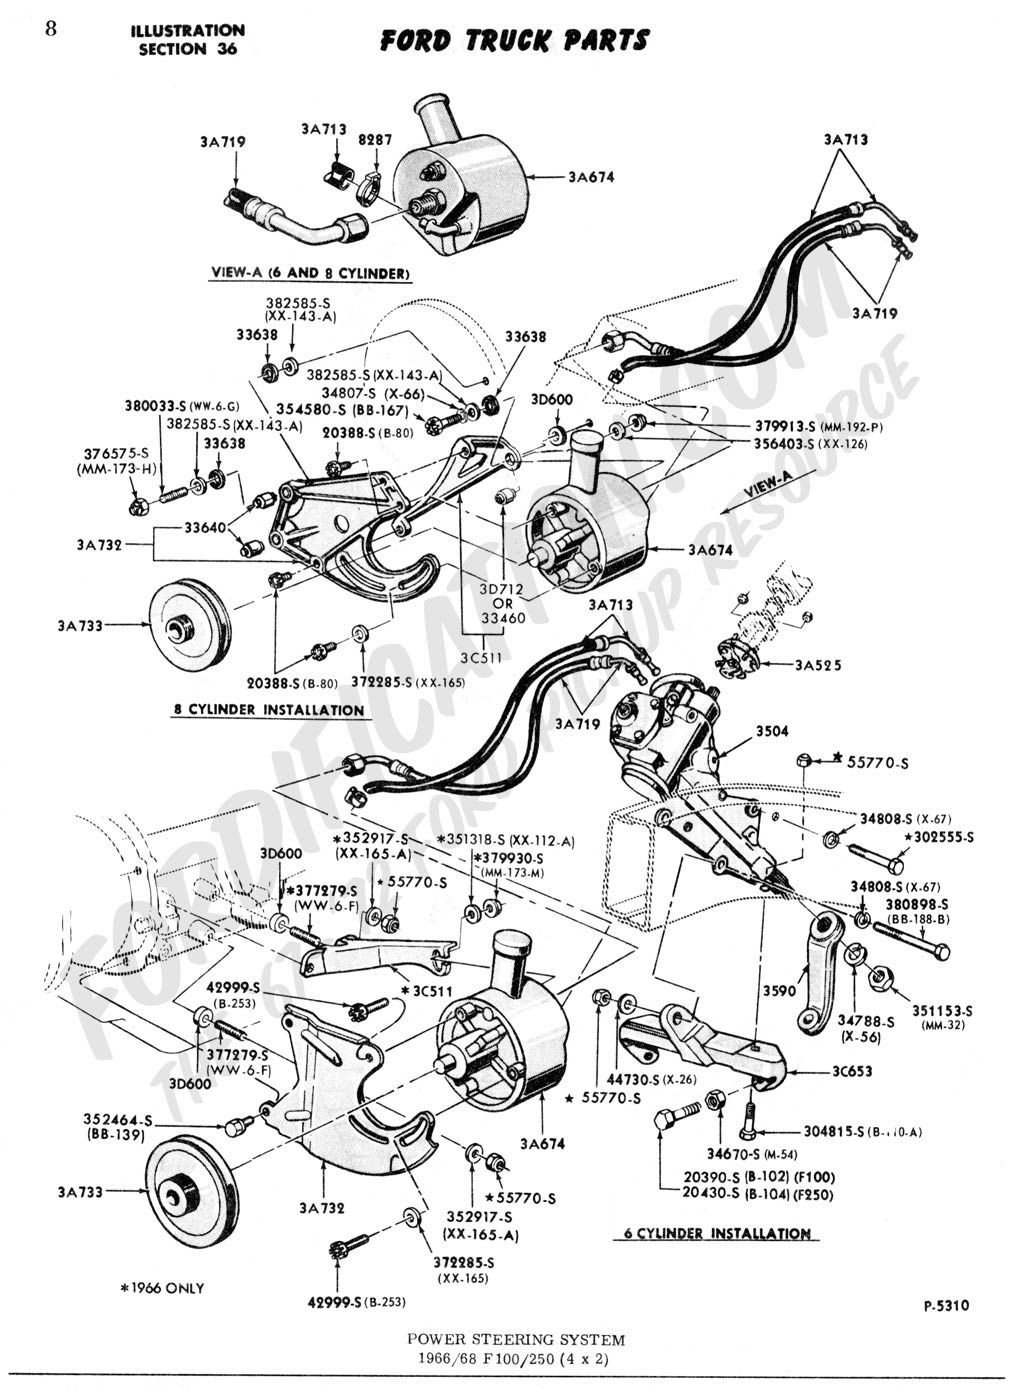 need a diagram of a 2006 ford f250 power steering box where